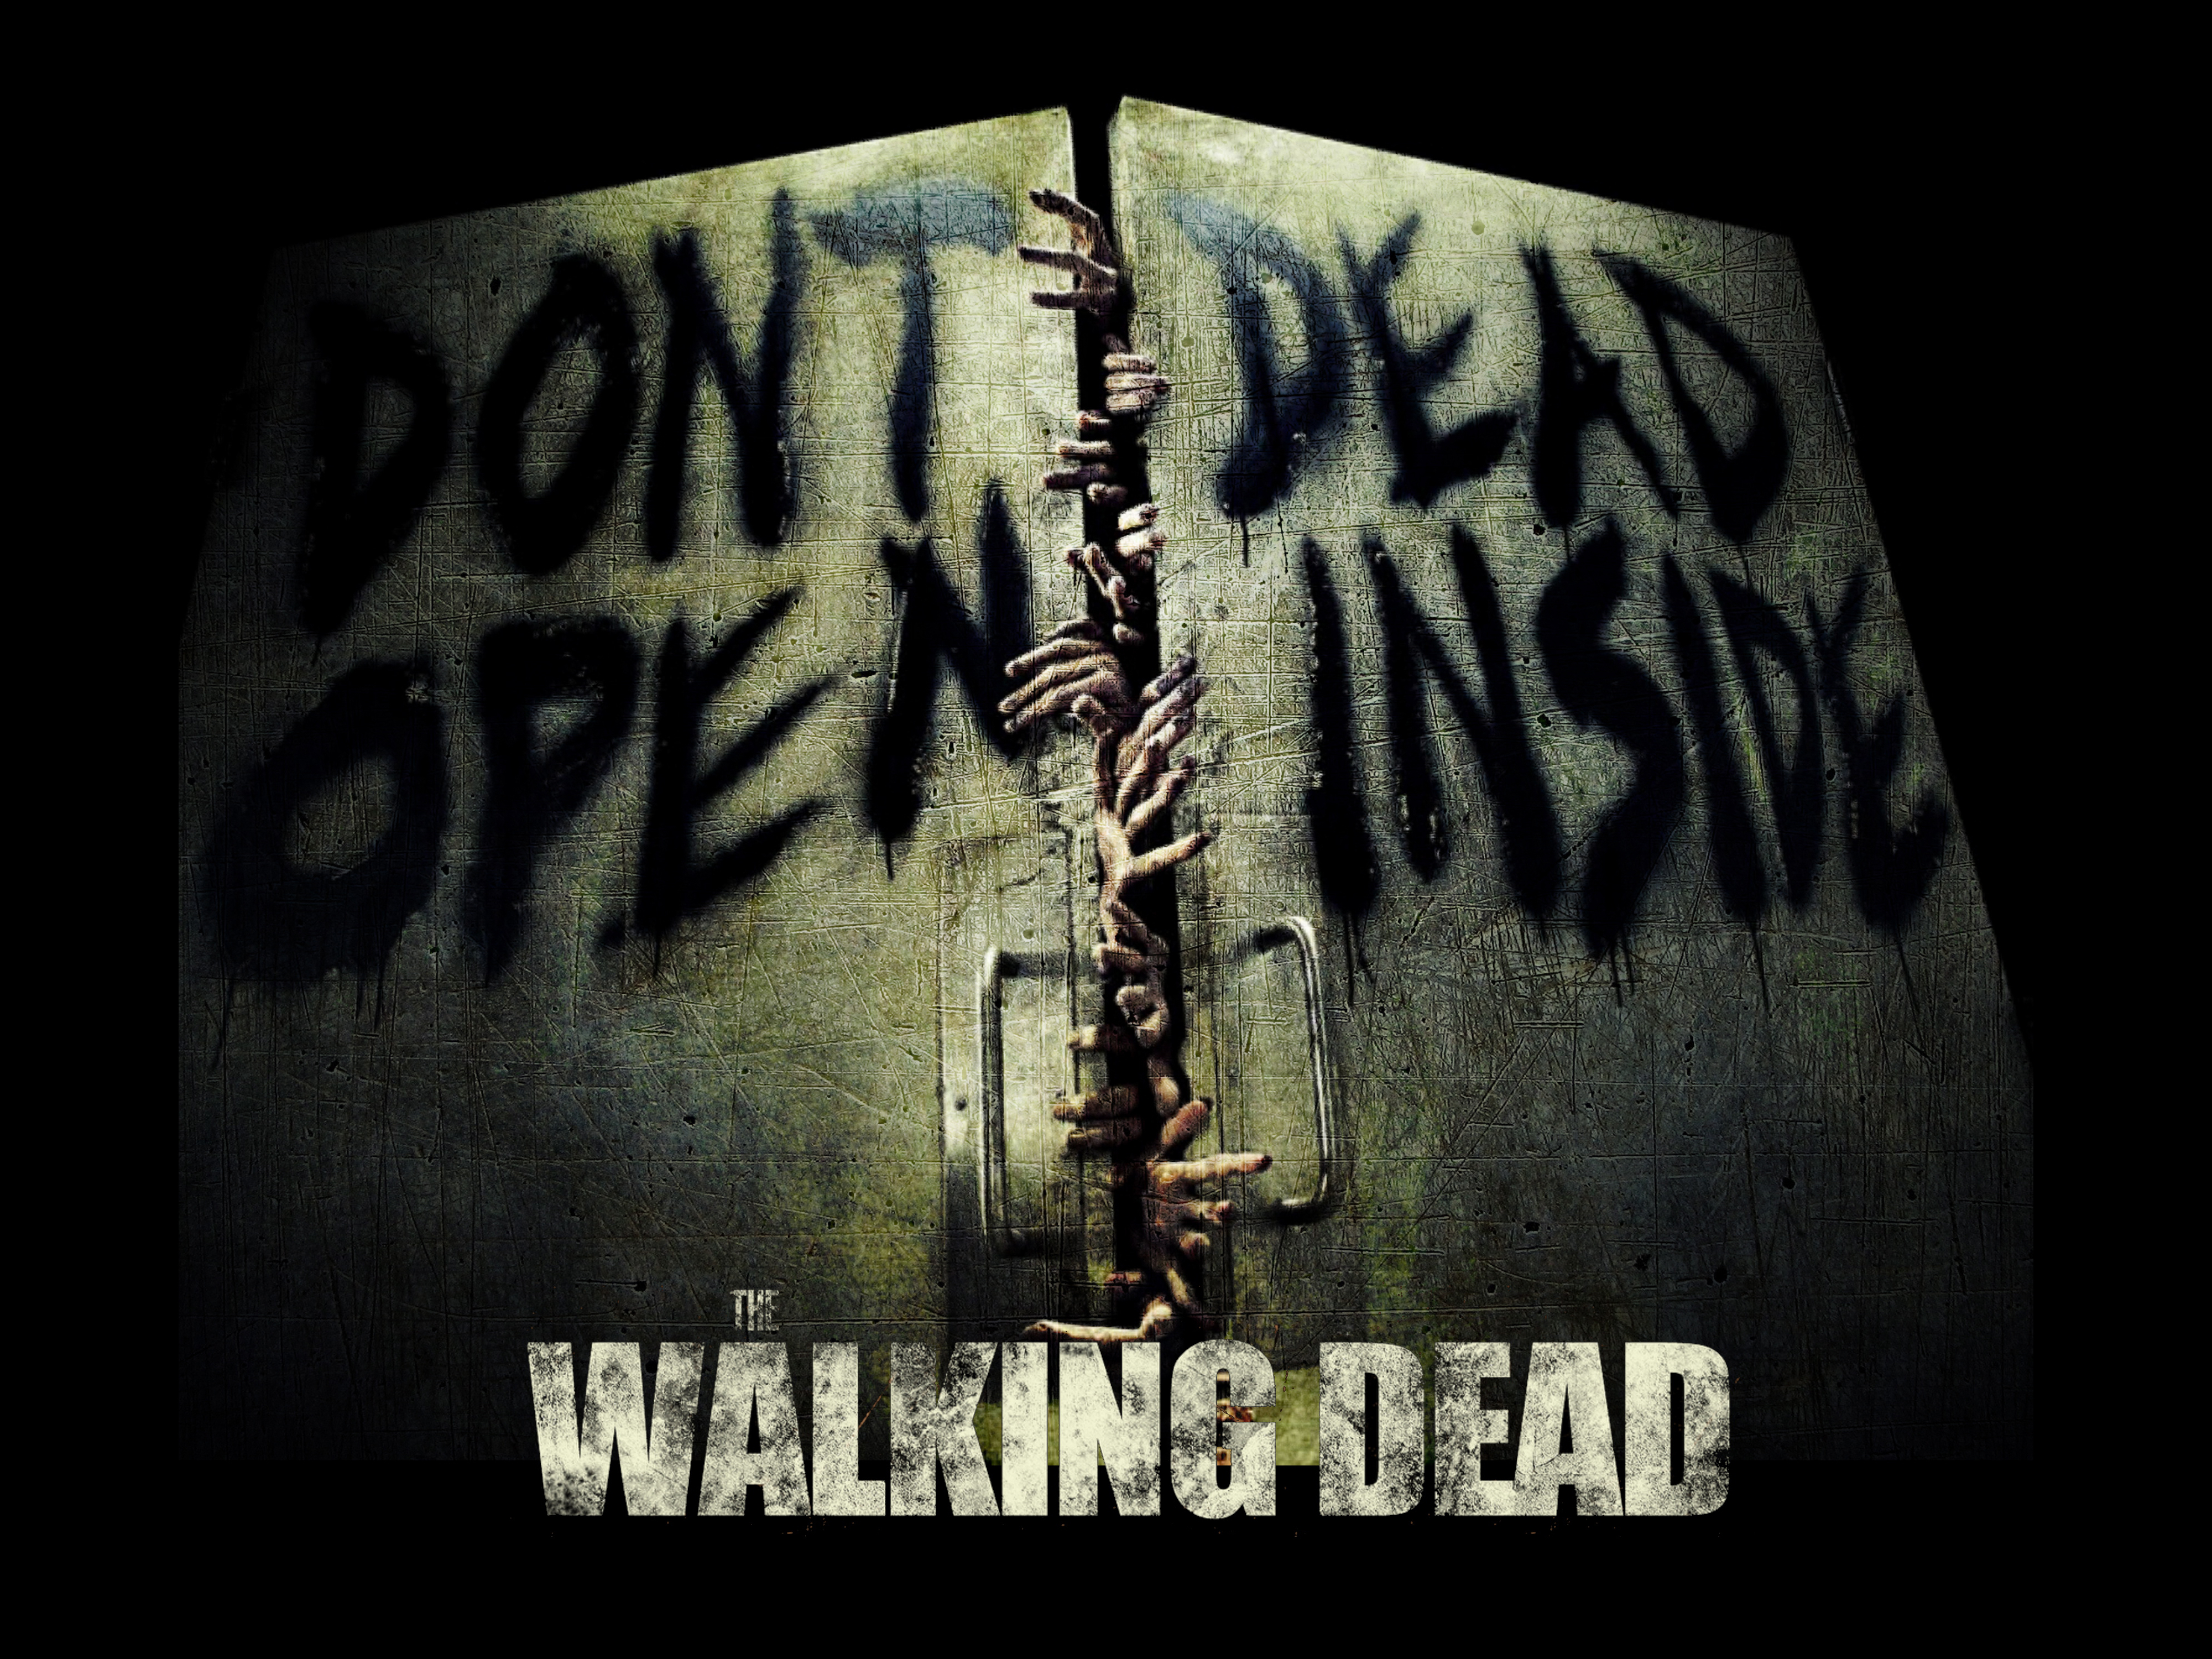 The Walking Dead Wallpaper Images Crazy Gallery 4000x3000